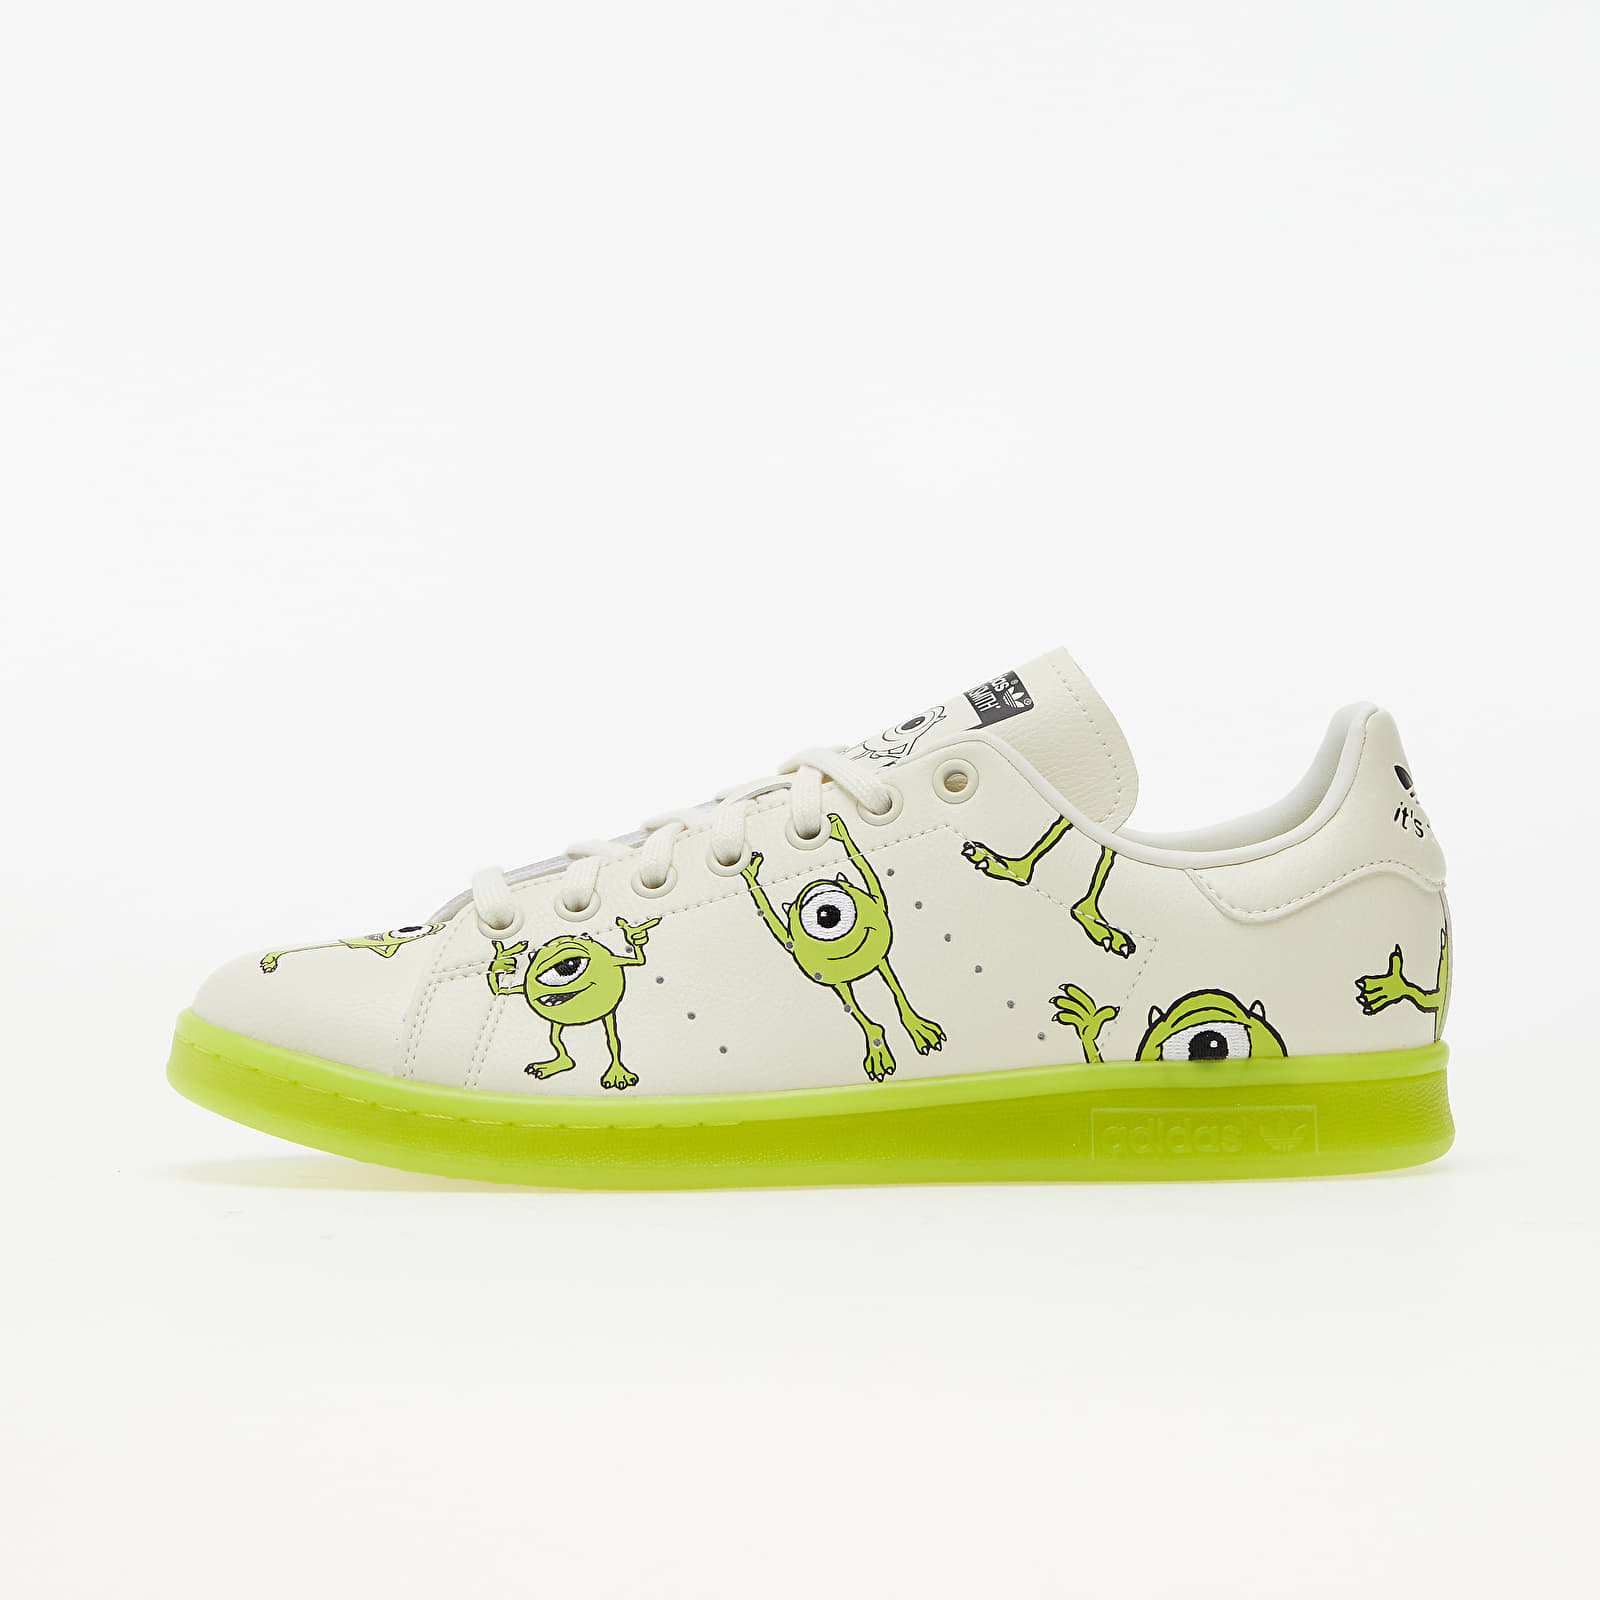 adidas Disney Stan Smith Off White/ Phanton/ Core Black EUR 46